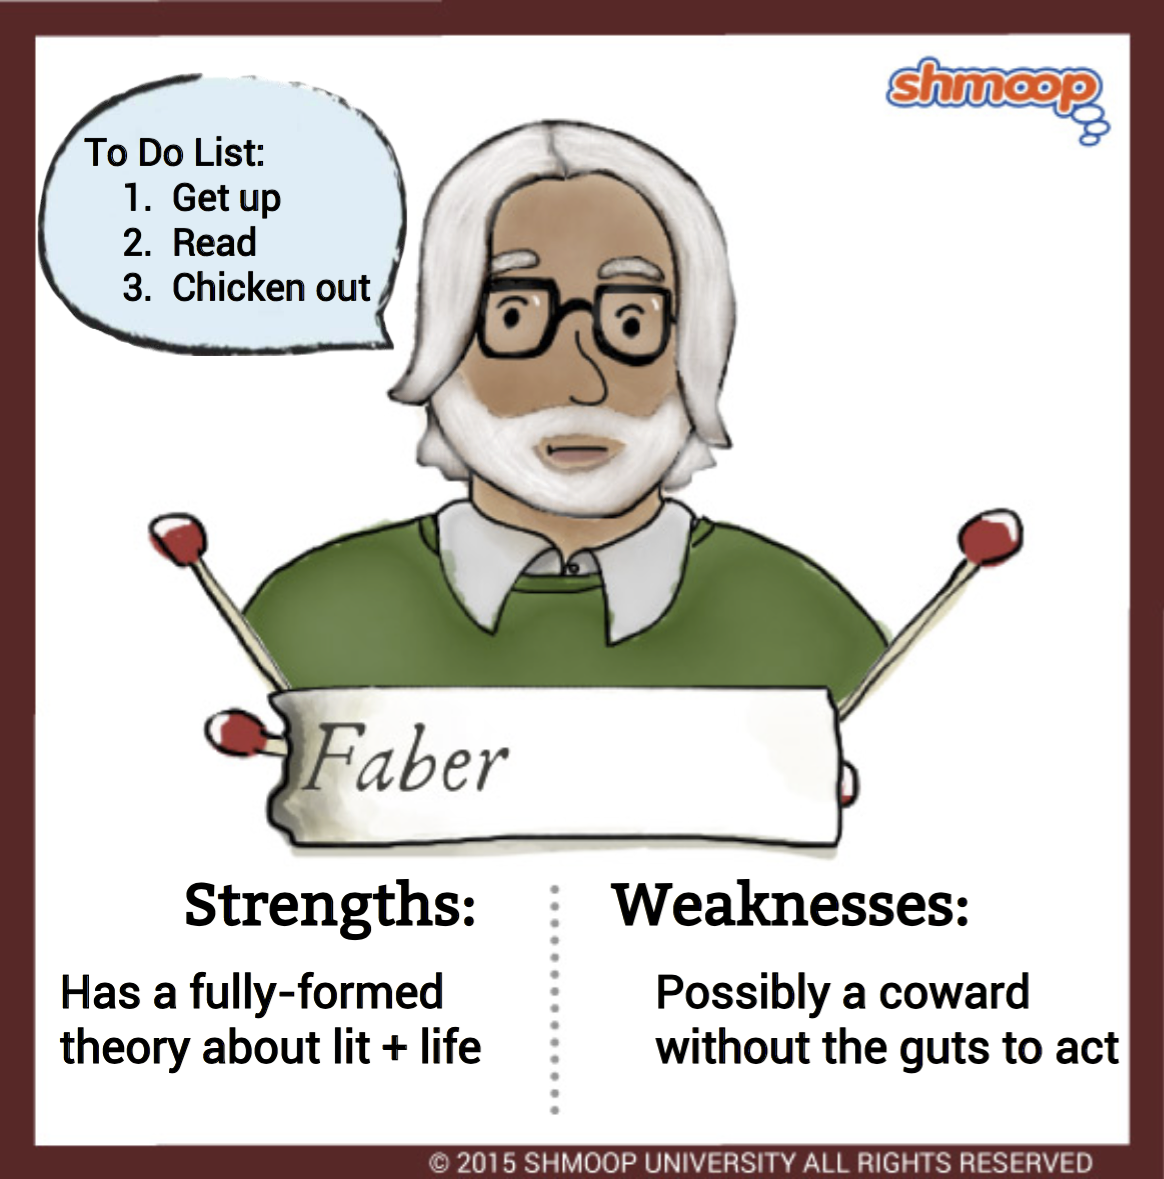 an analysis of the main character in ray bradburys fahrenheit 451 Ray bradbury fahrenheit 451 literary analysis in fahrenheit 451, what are ray bradbury's main messages (main ideas) and how do they apply to us today.